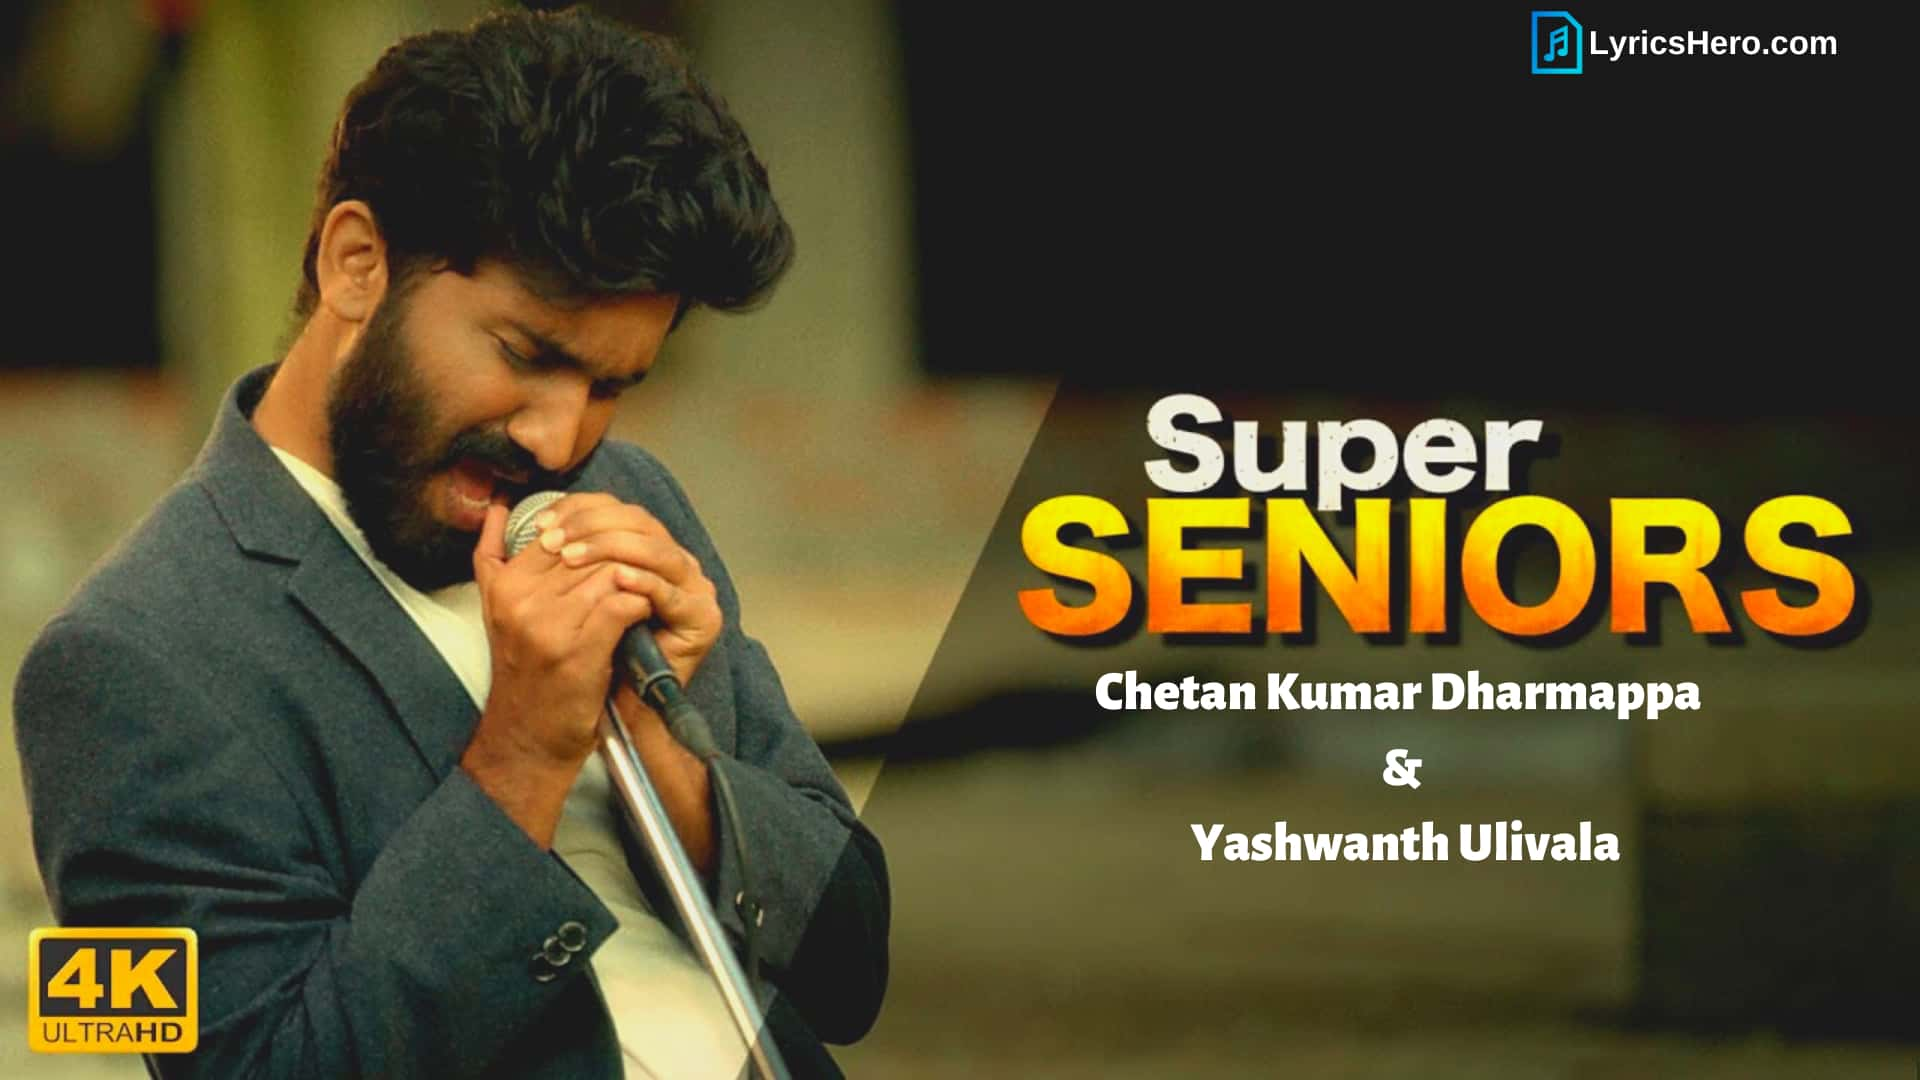 Super Seniors Song Lyrics, Super Seniors Lyrics, Super Seniors Lyrics Chetan Kumar Dharmappa & Yashwanth Ulivala